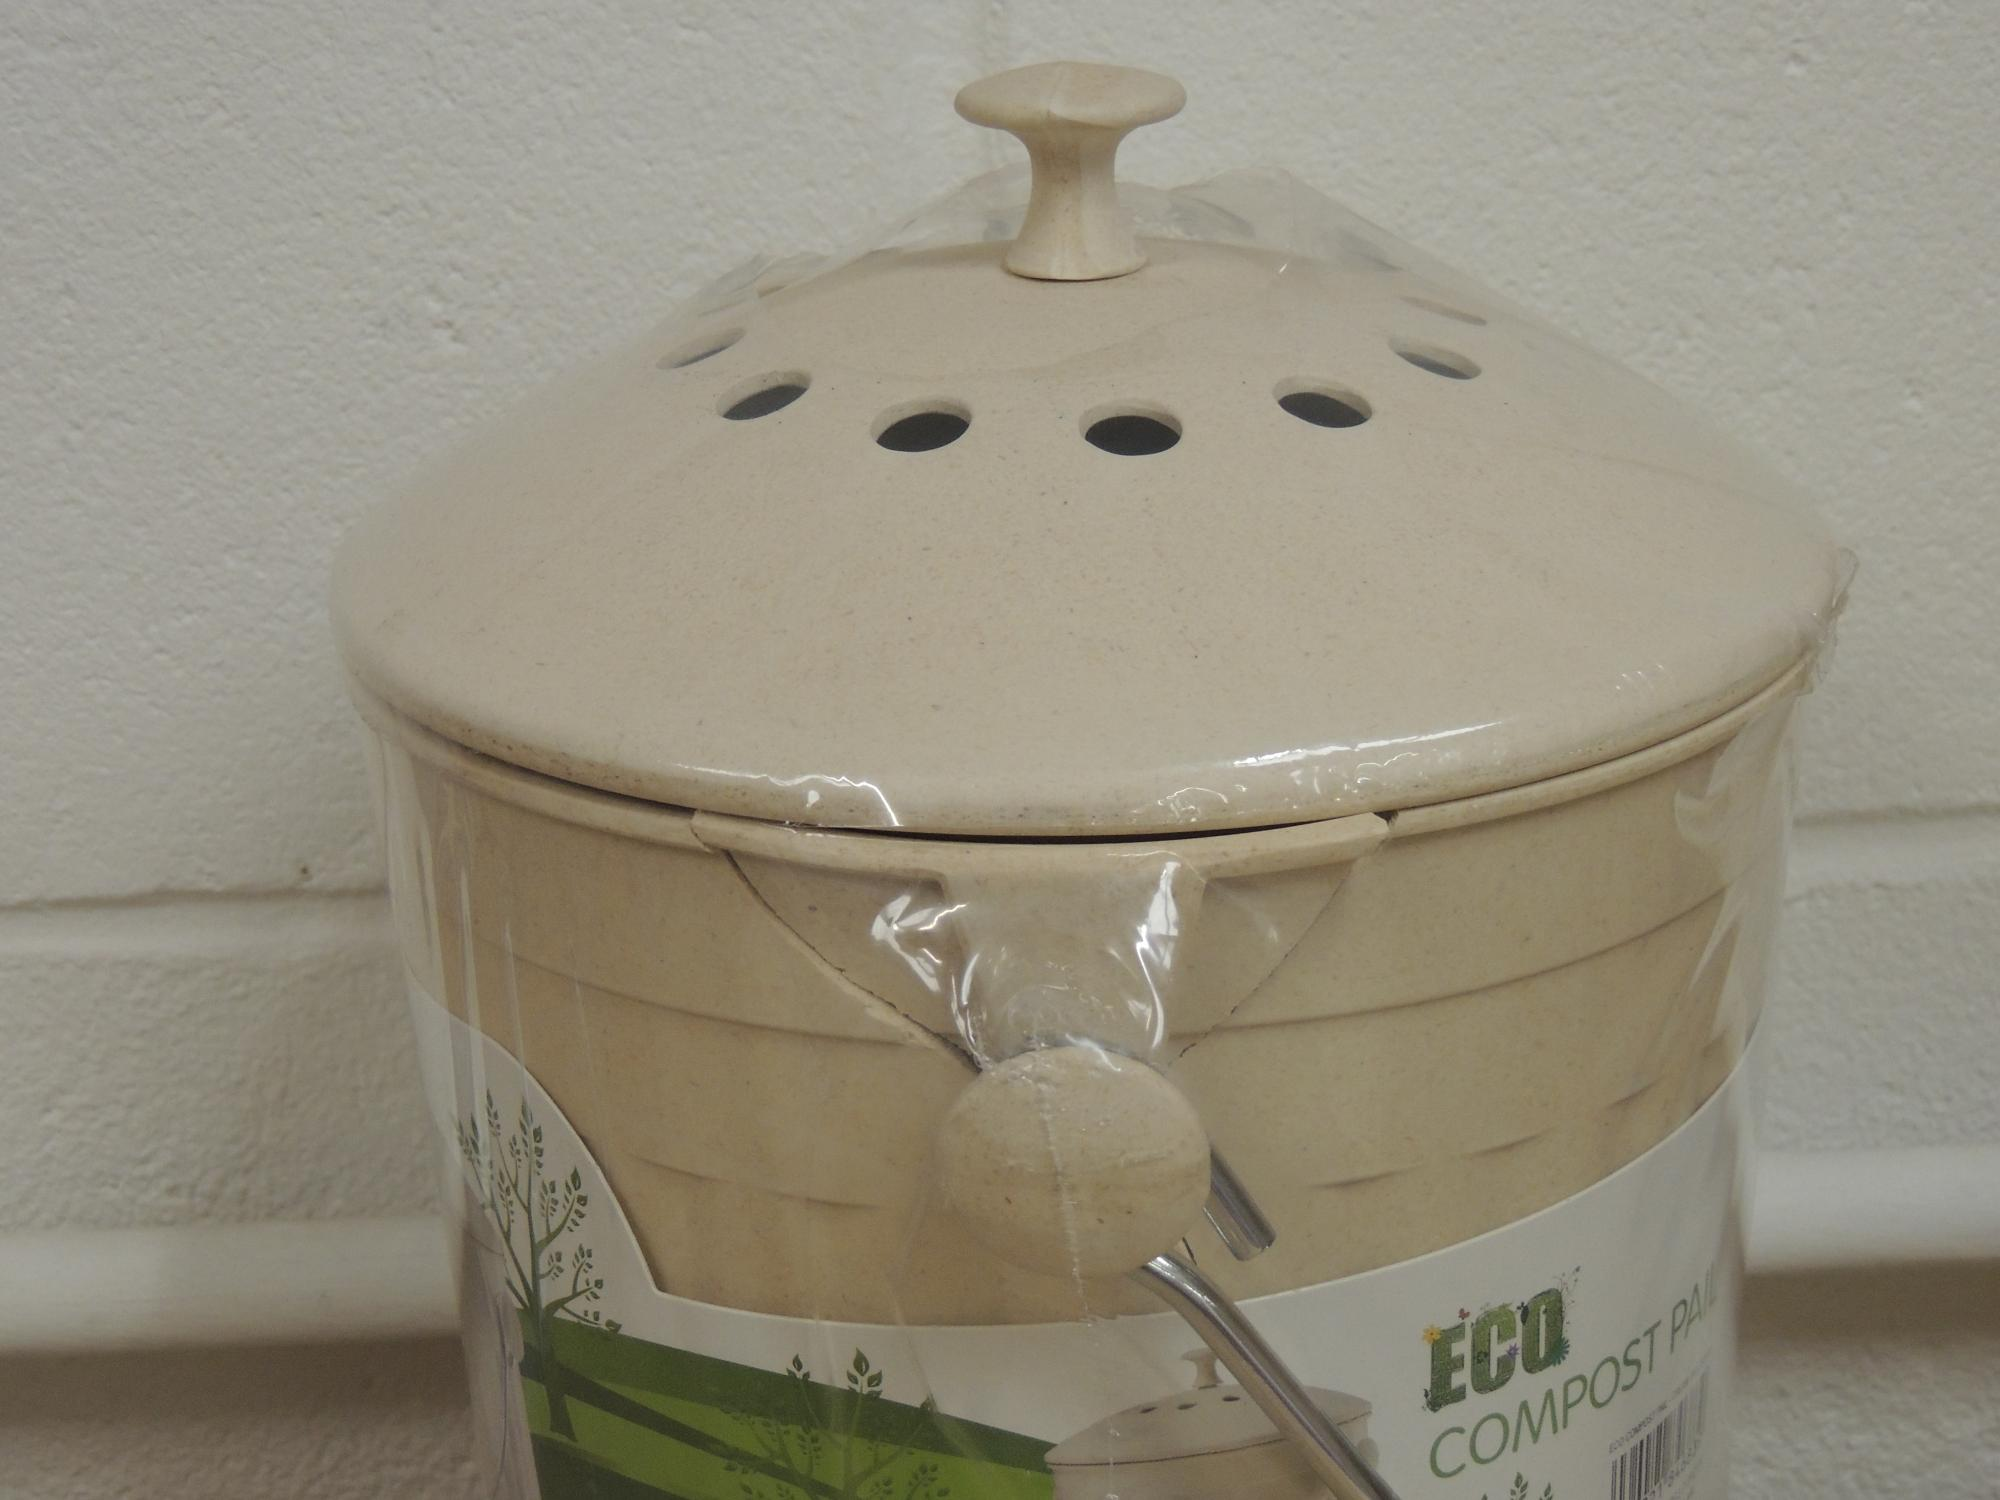 Practical Handle To Carry Your Pail Compost Heap Dishwasher Safe Base Only Replacements Filters Are Also Available Colour Cream